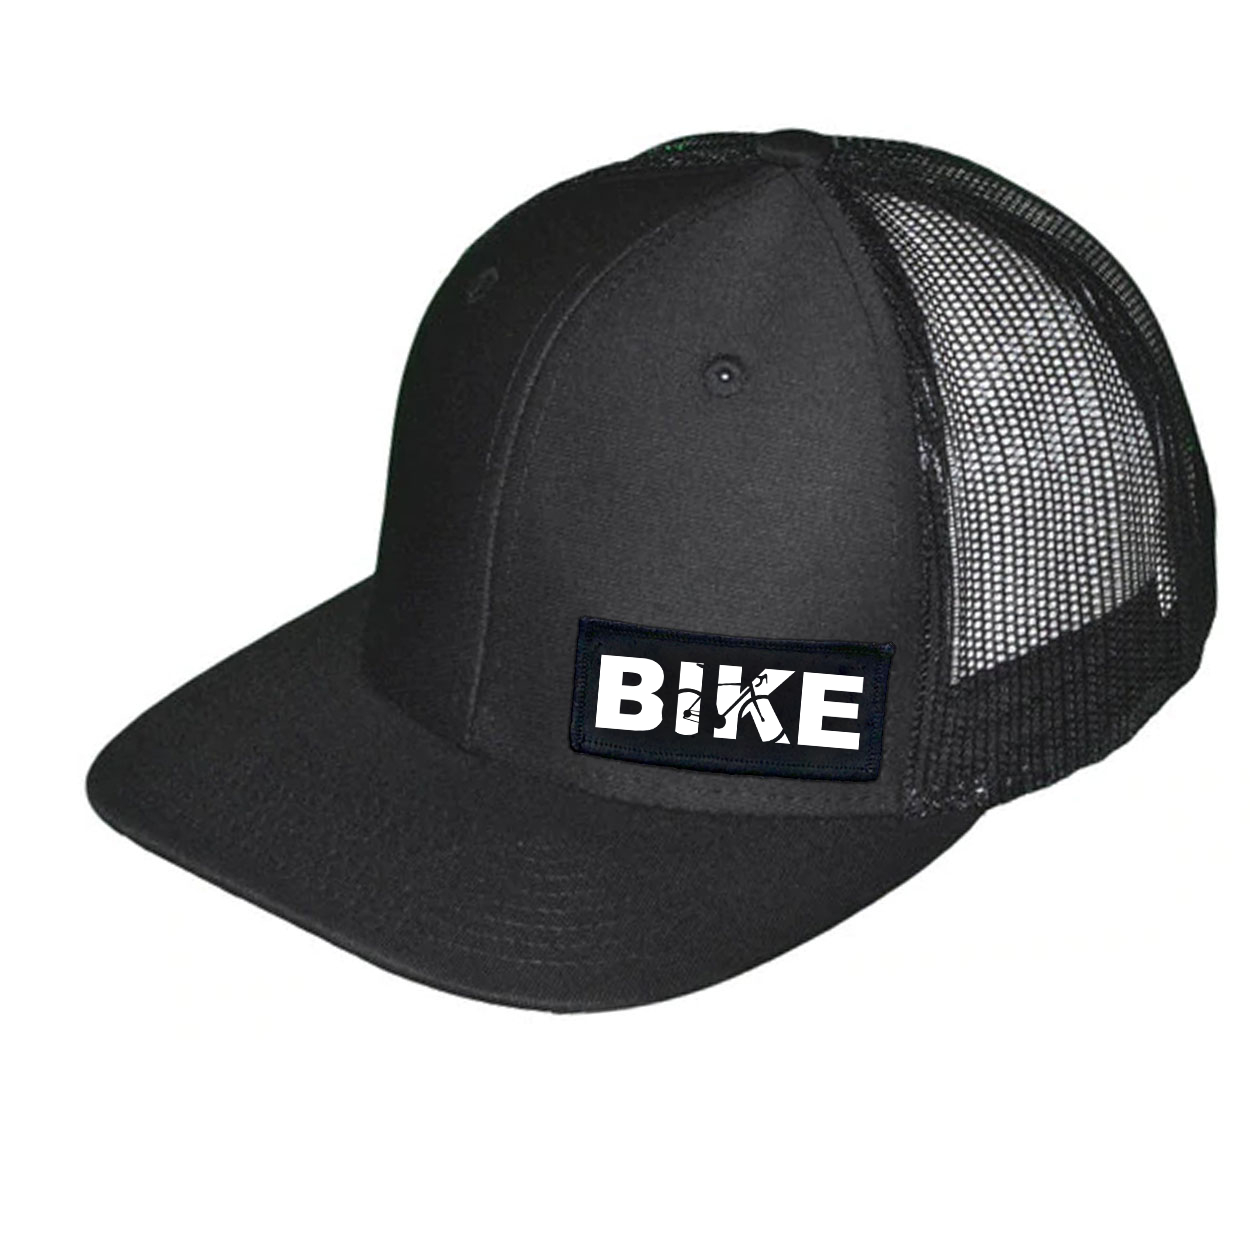 Bike Cycling Logo Night Out Woven Patch Snapback Trucker Hat Black (White Logo)